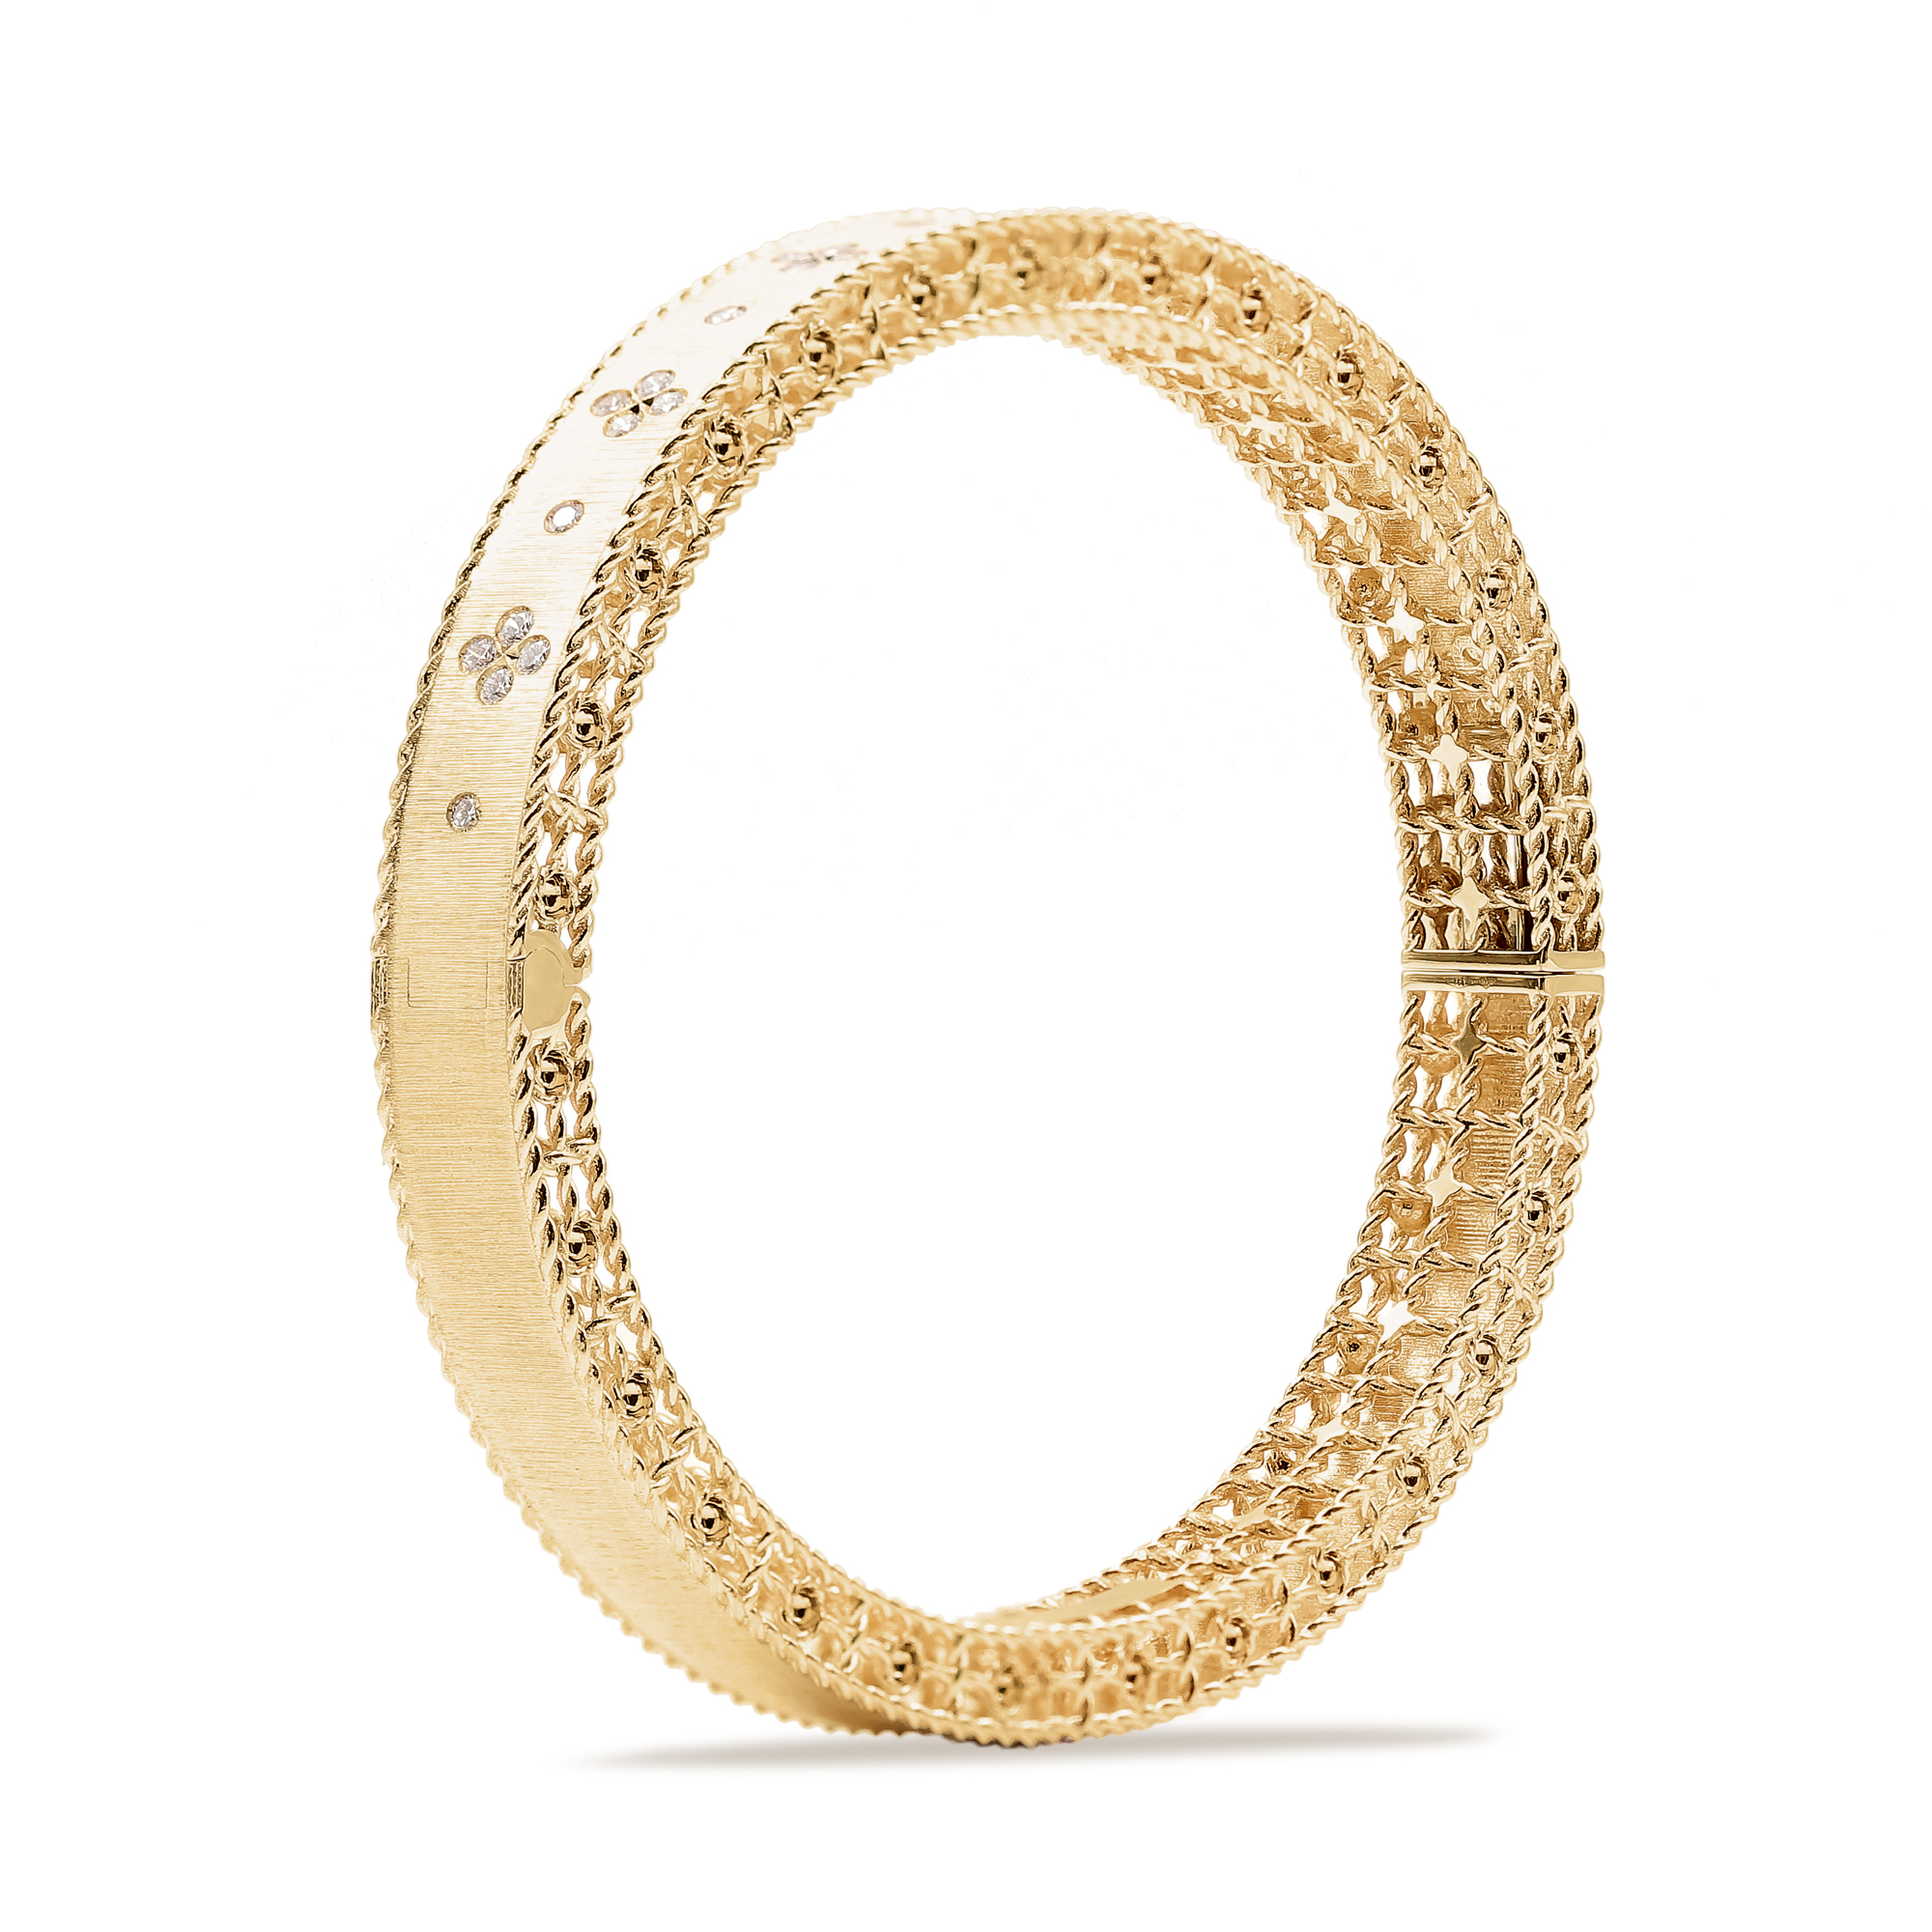 Venetian Princess Bangle - ADR777BA2641